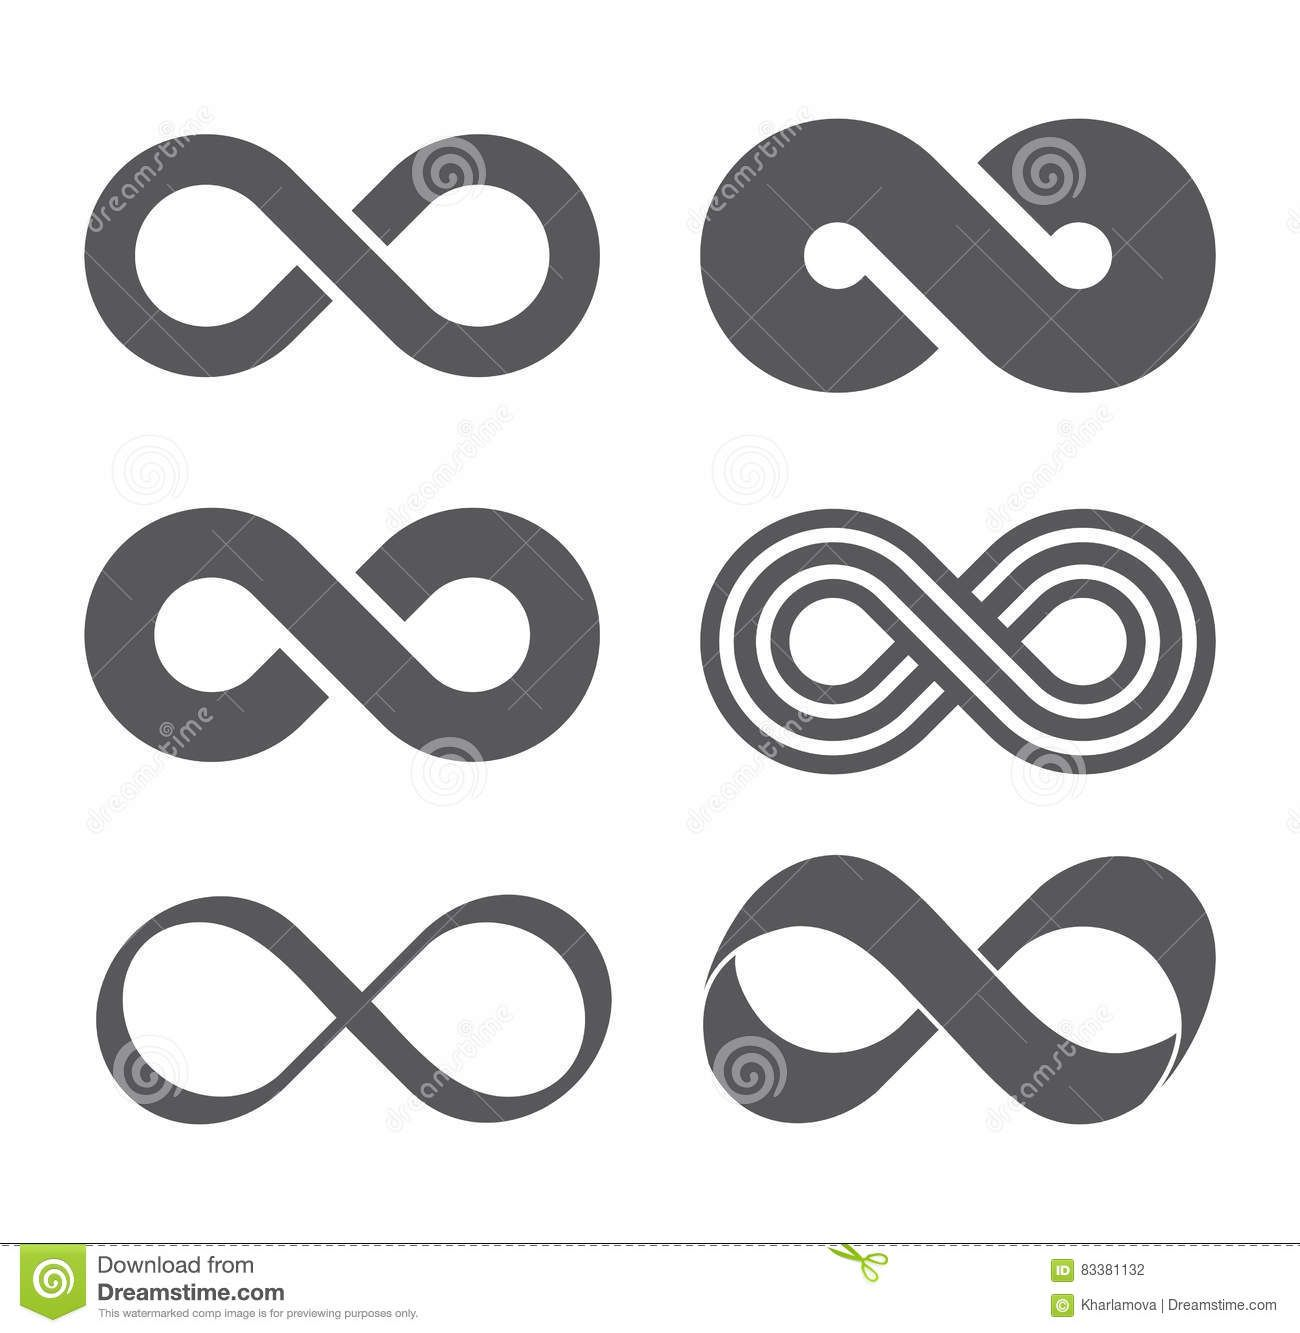 Infinity Sign Mobius Strip Photo About Icon Internet Dimension Line Illustration Infinite Curve Interla Mobius Strip Infinity Sign Mobius Strip Tattoo